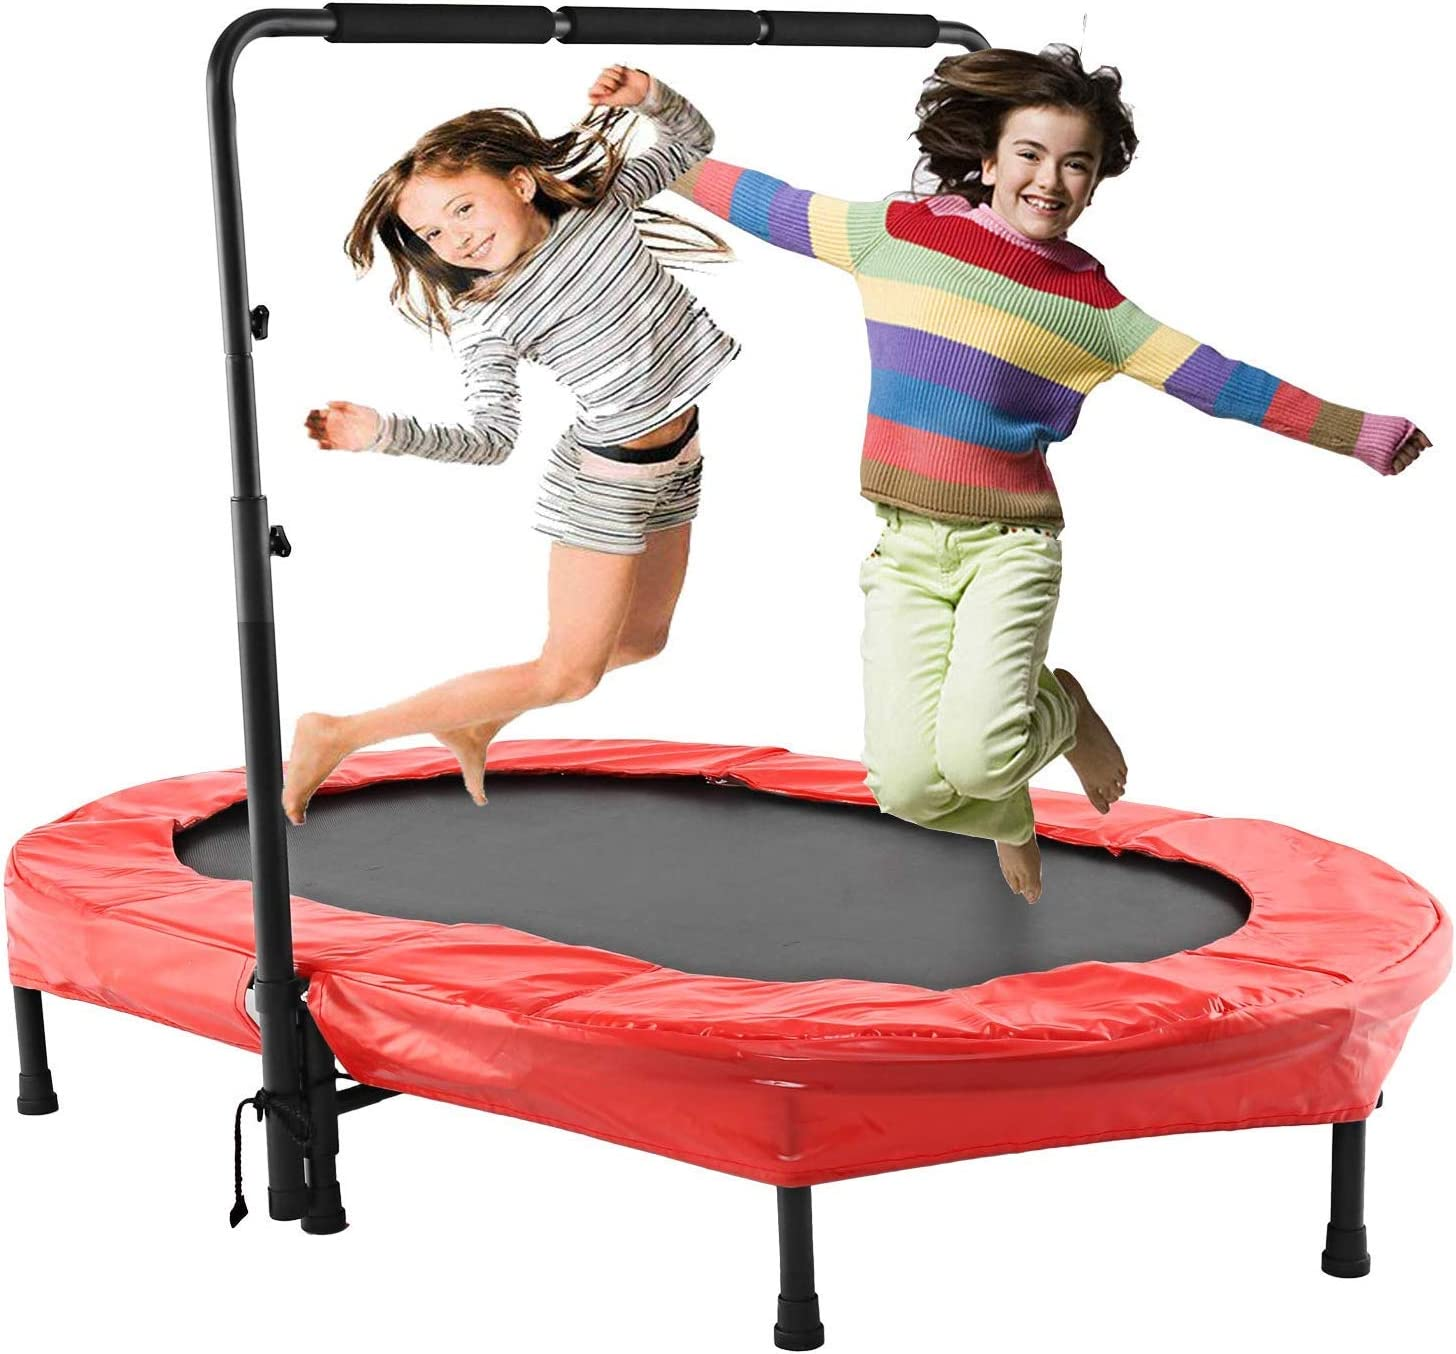 Binxin Mini Rebounder Trampoline Indoor Outdoor with Adjustable Handle for Two Kids, Parent-Child Twins Trampolines US Stock